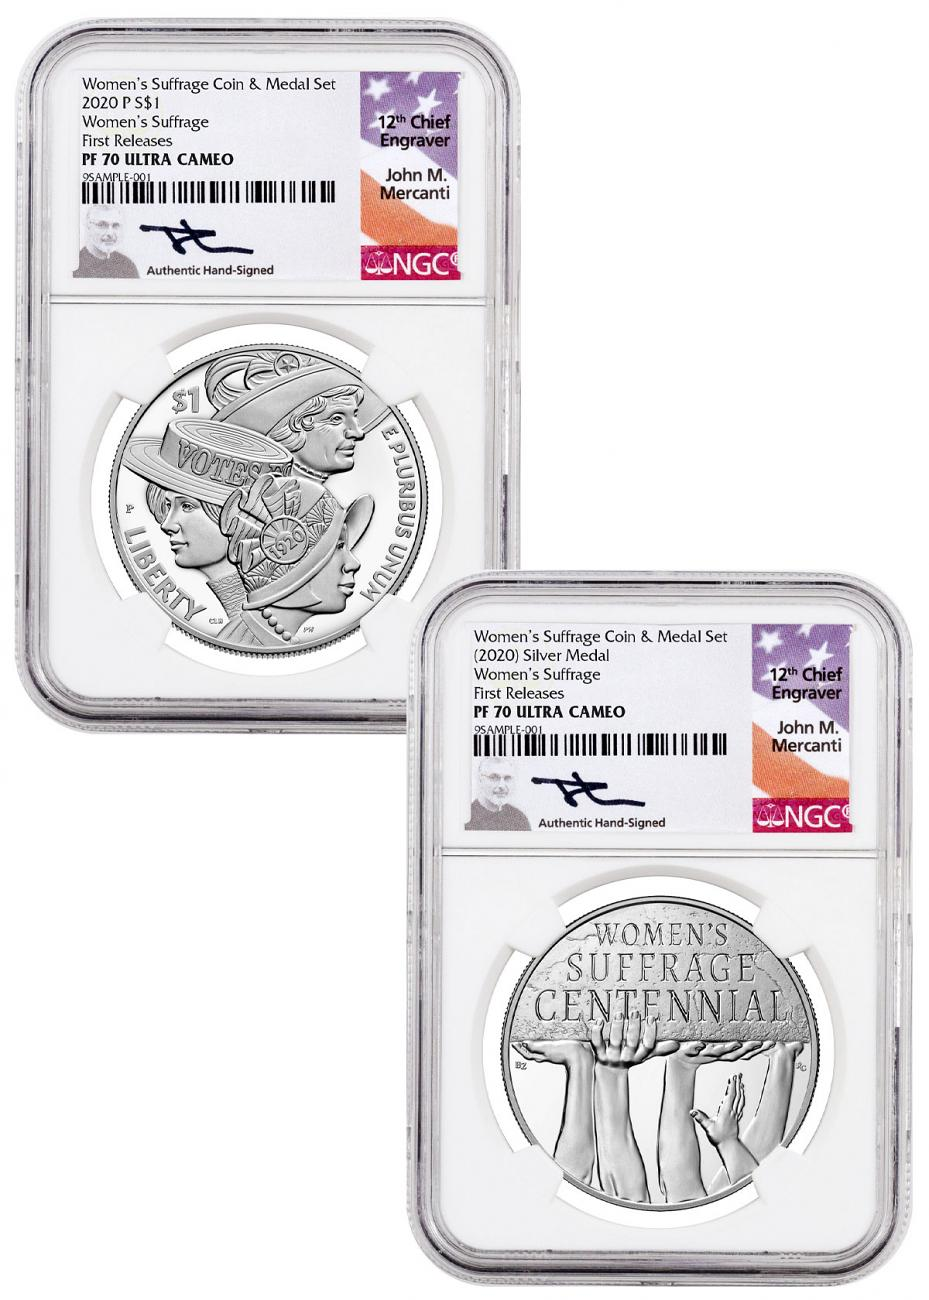 2-Piece Set - 2020-P Women's Suffrage Silver Dollar and Medal Set Commemorative Proof Coins NGC PF70 UC FR Mercanti Signed Label